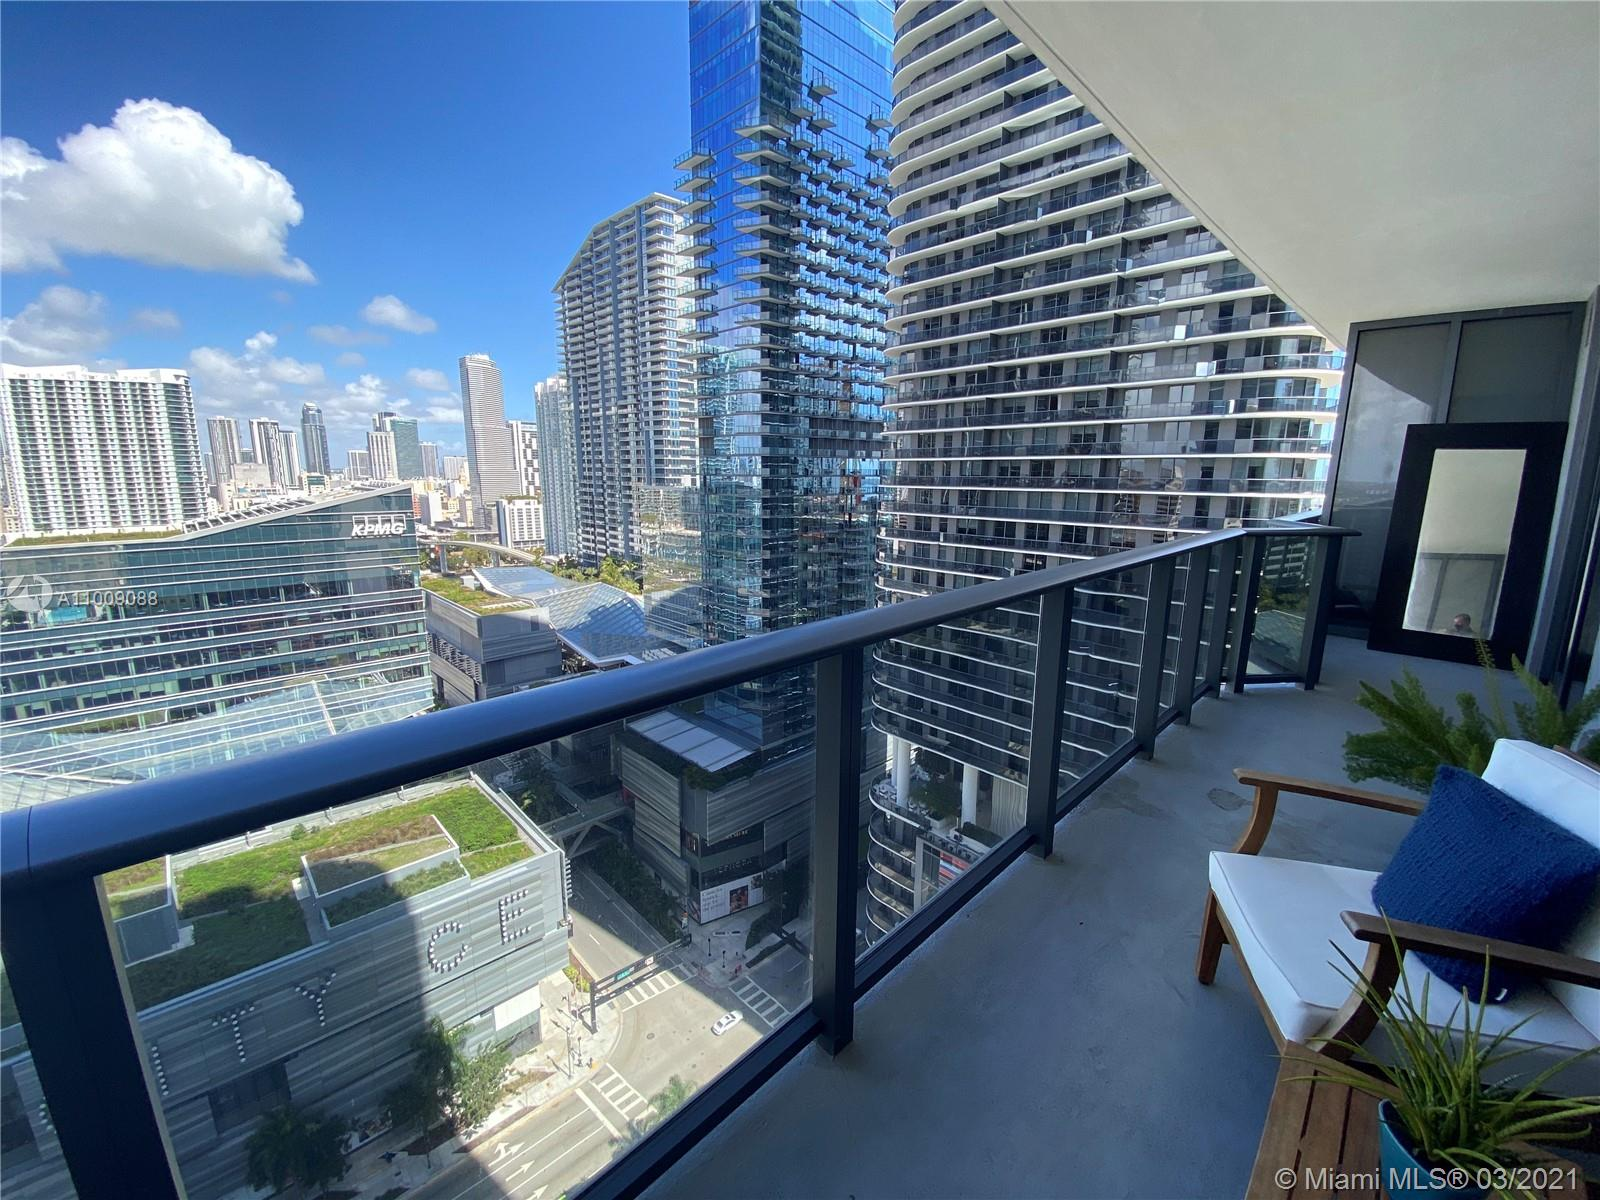 Rarely available 1 bedroom 1.5 bathroom at Brickell Heights. Spacious floorplan with north view to Brickell City Center and Miami River. Luxury finishes and oversized balcony. Amenities include